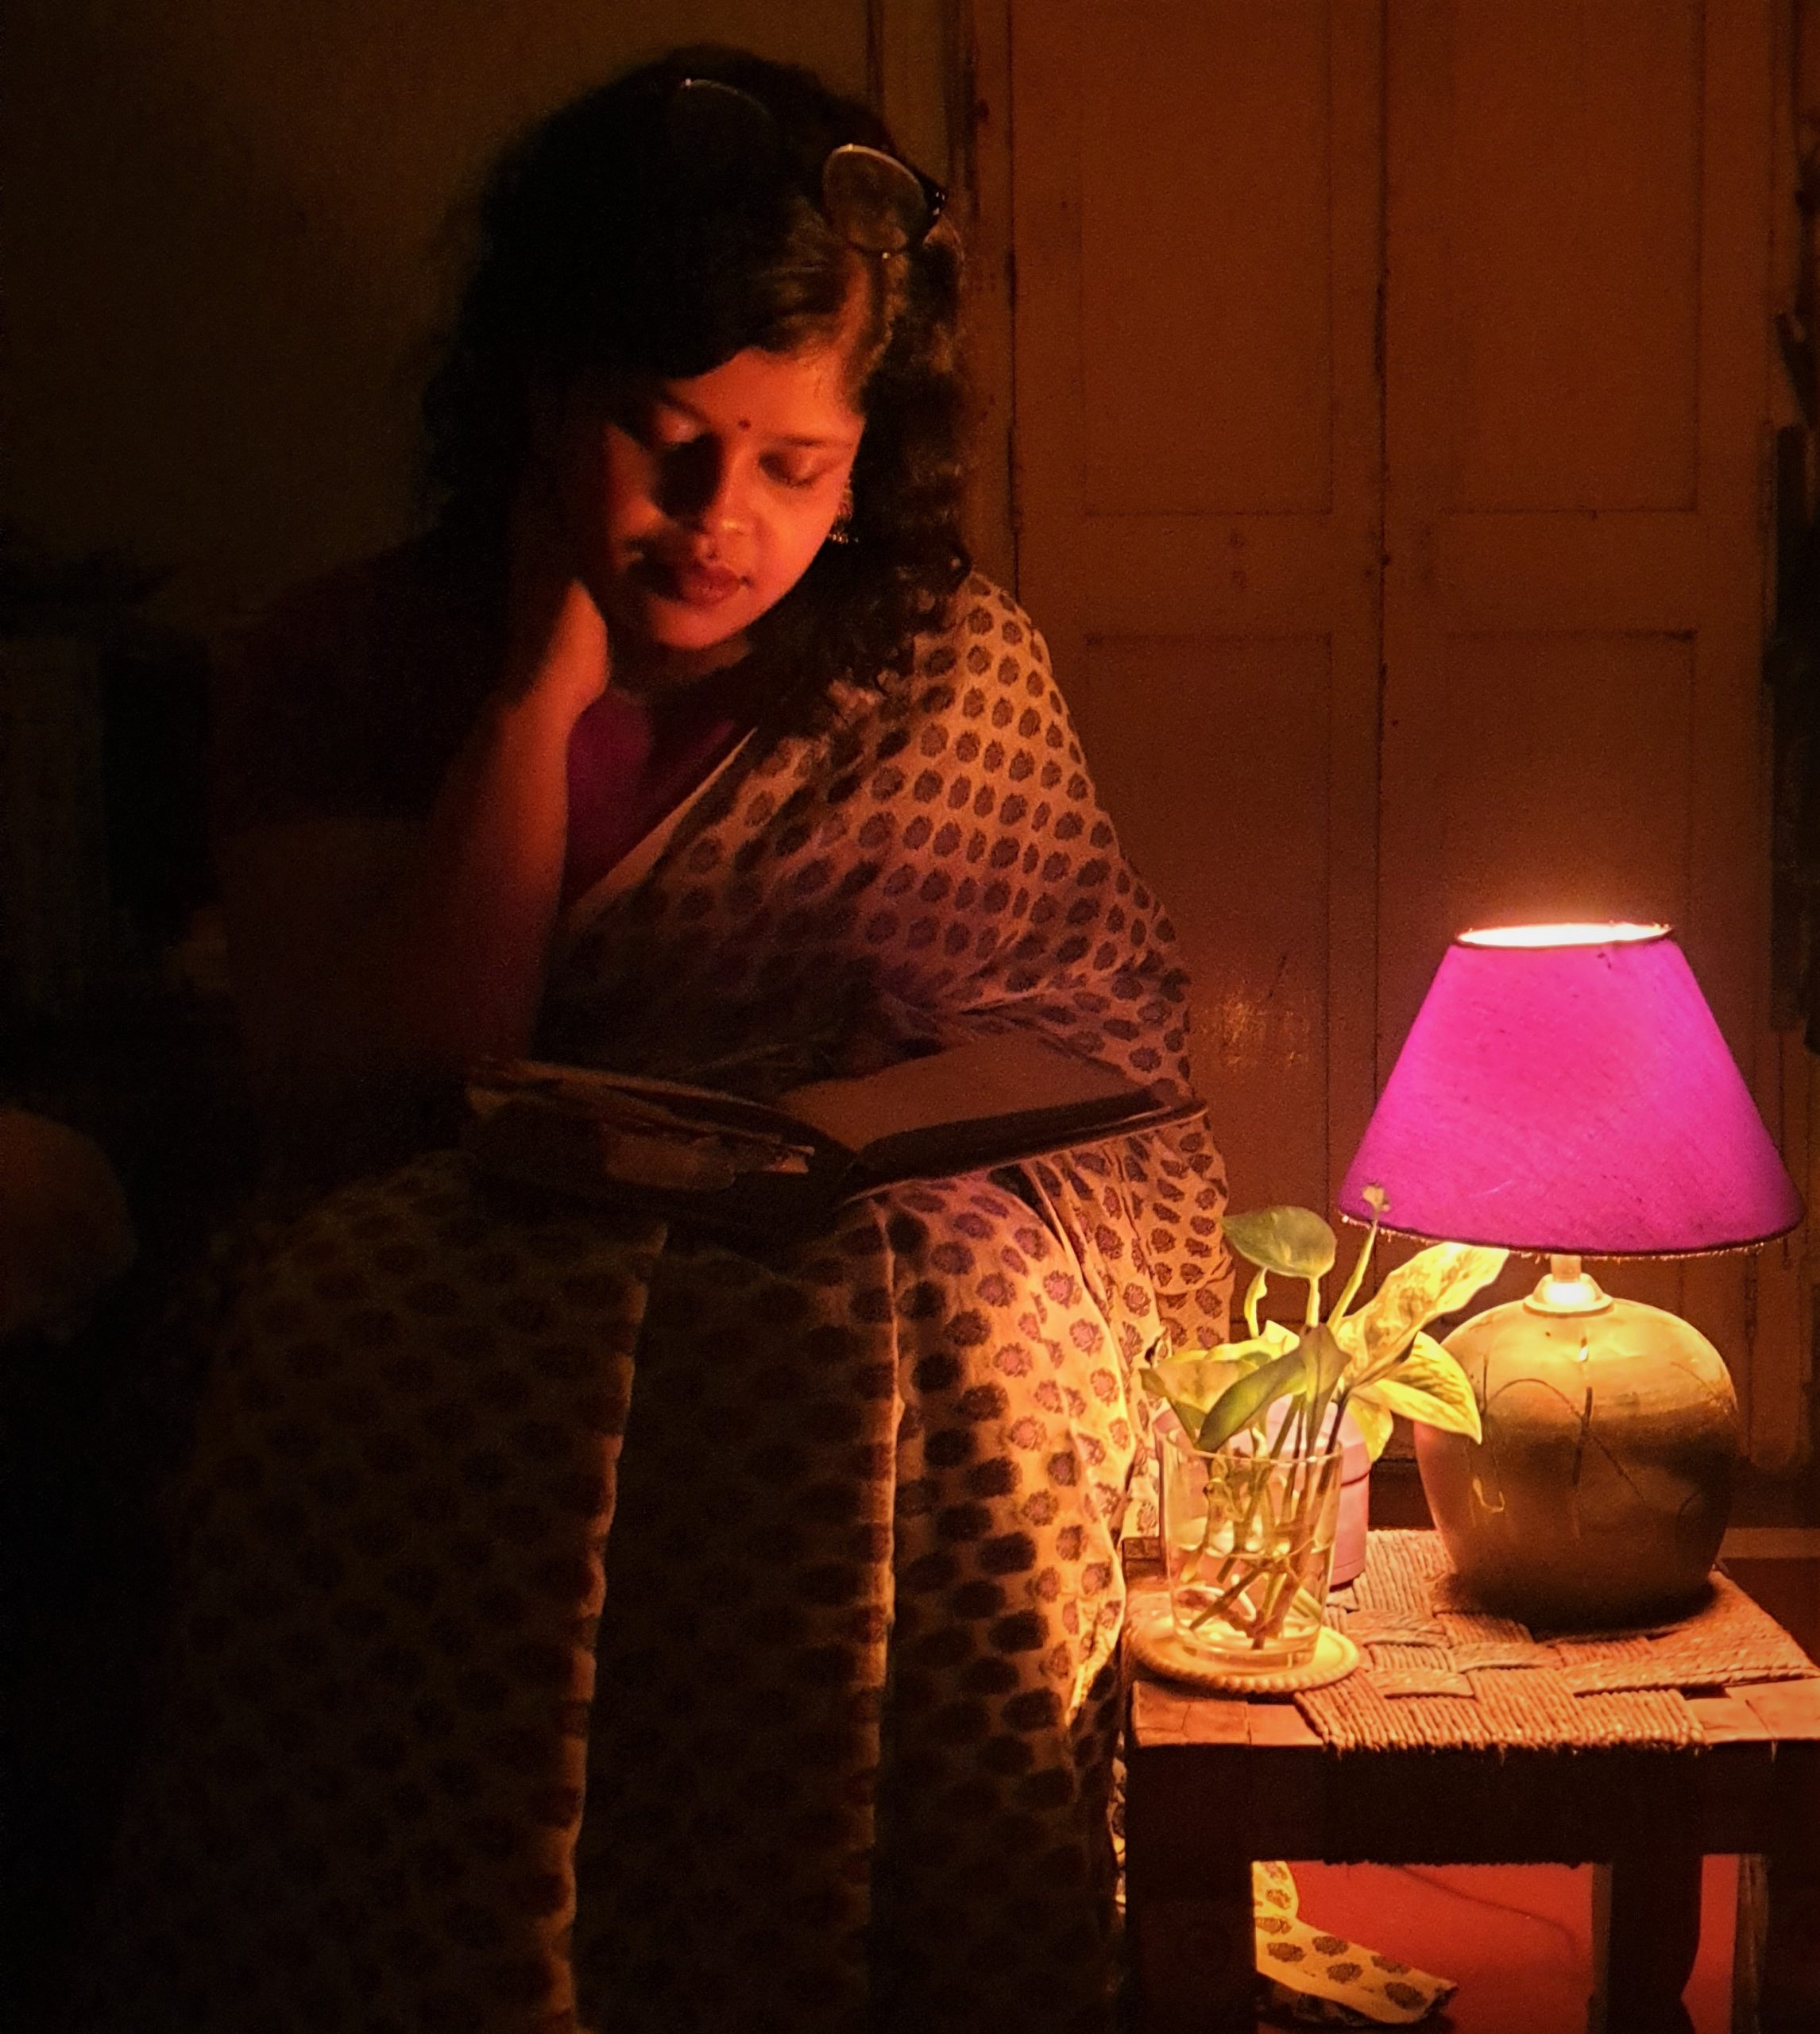 Sohini is reading a book.